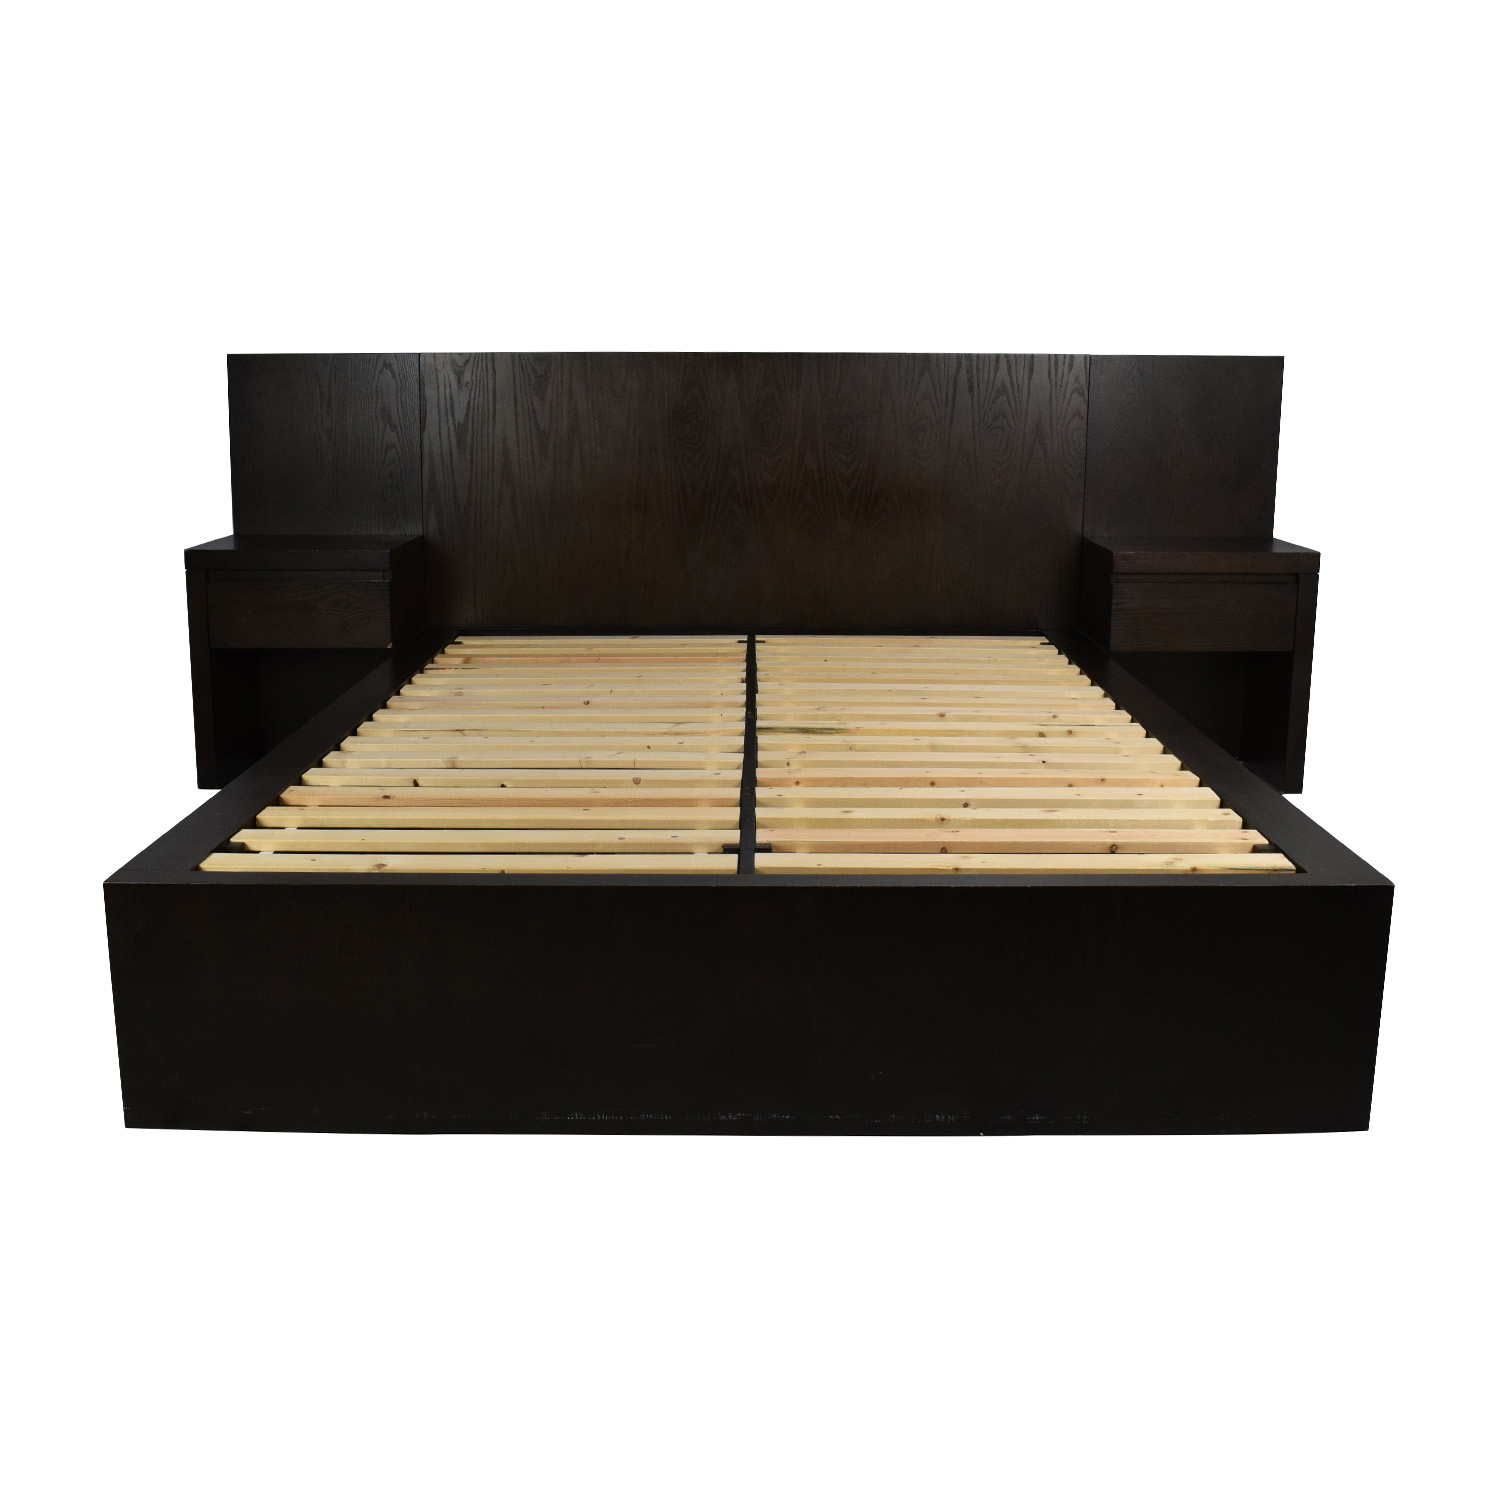 beds en king lur with spr bed gb storage brimnes size y frame double products ikea oak effect standard